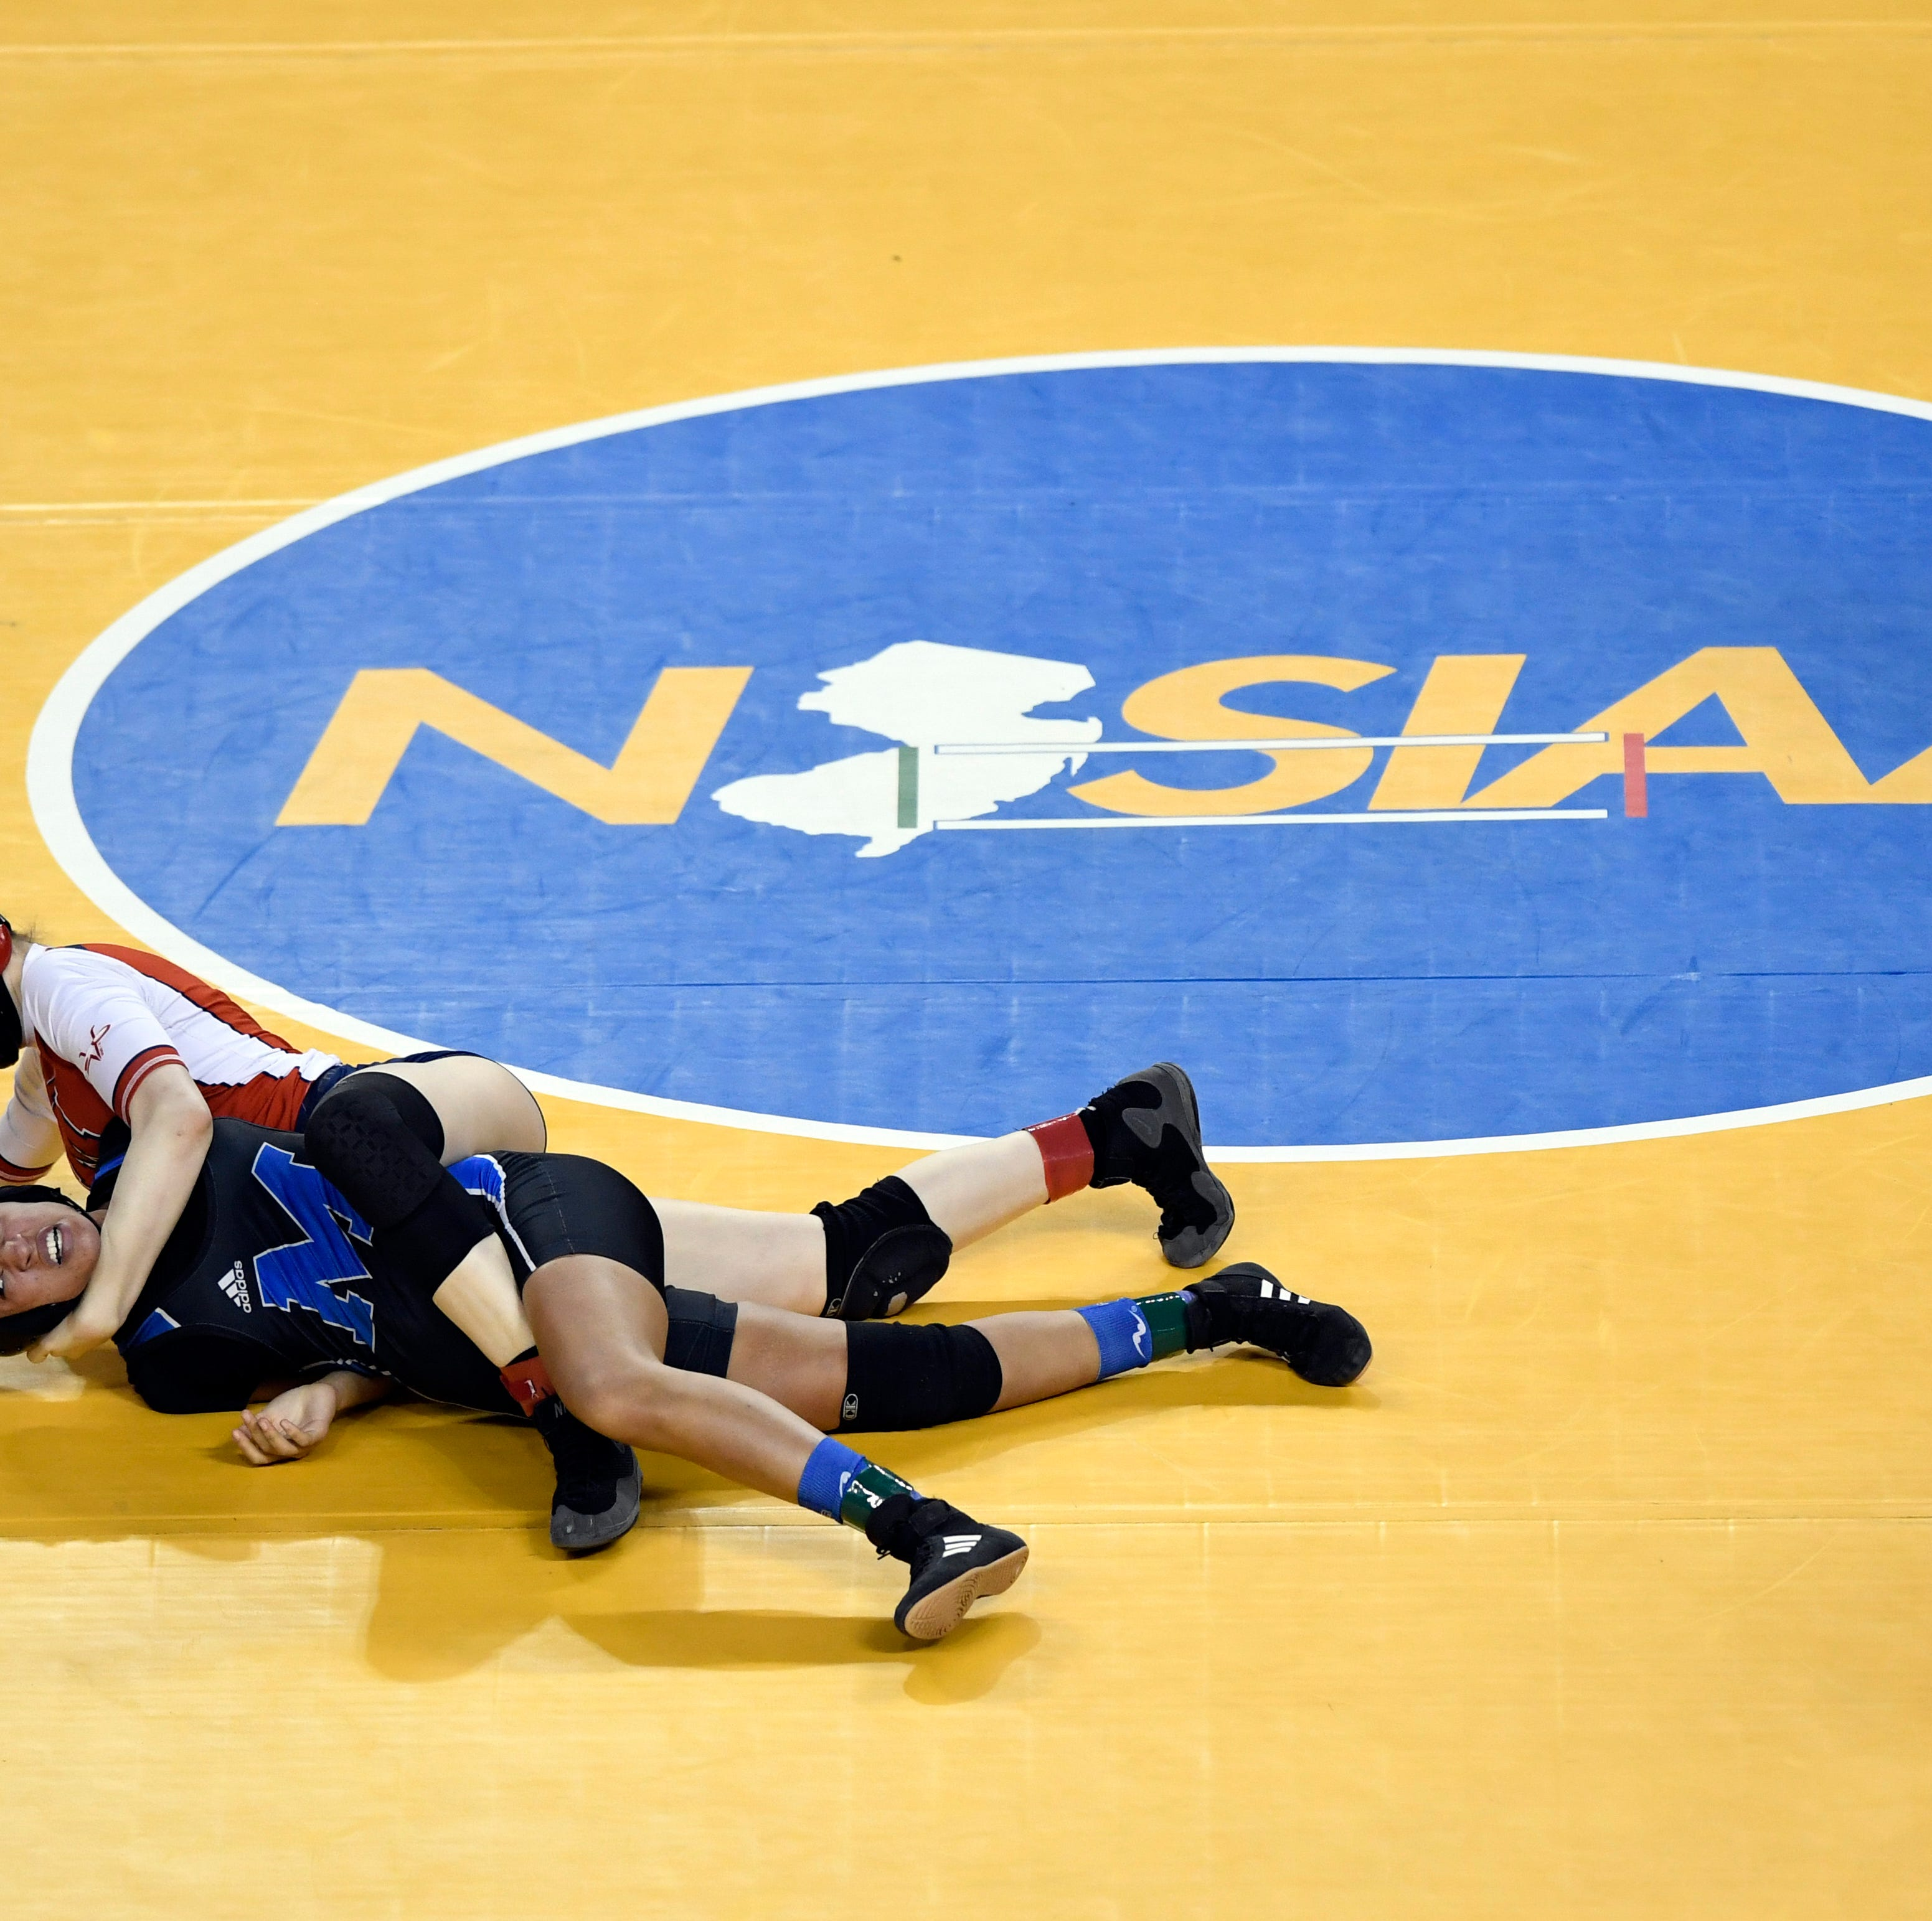 Jesse Johnson of Manalapan (red) attempts to pin Jaala Williams of Montclair in the 136-pound final match of the NJSIAA state wrestling tournament on Saturday, March 2, 2019, in Atlantic City.